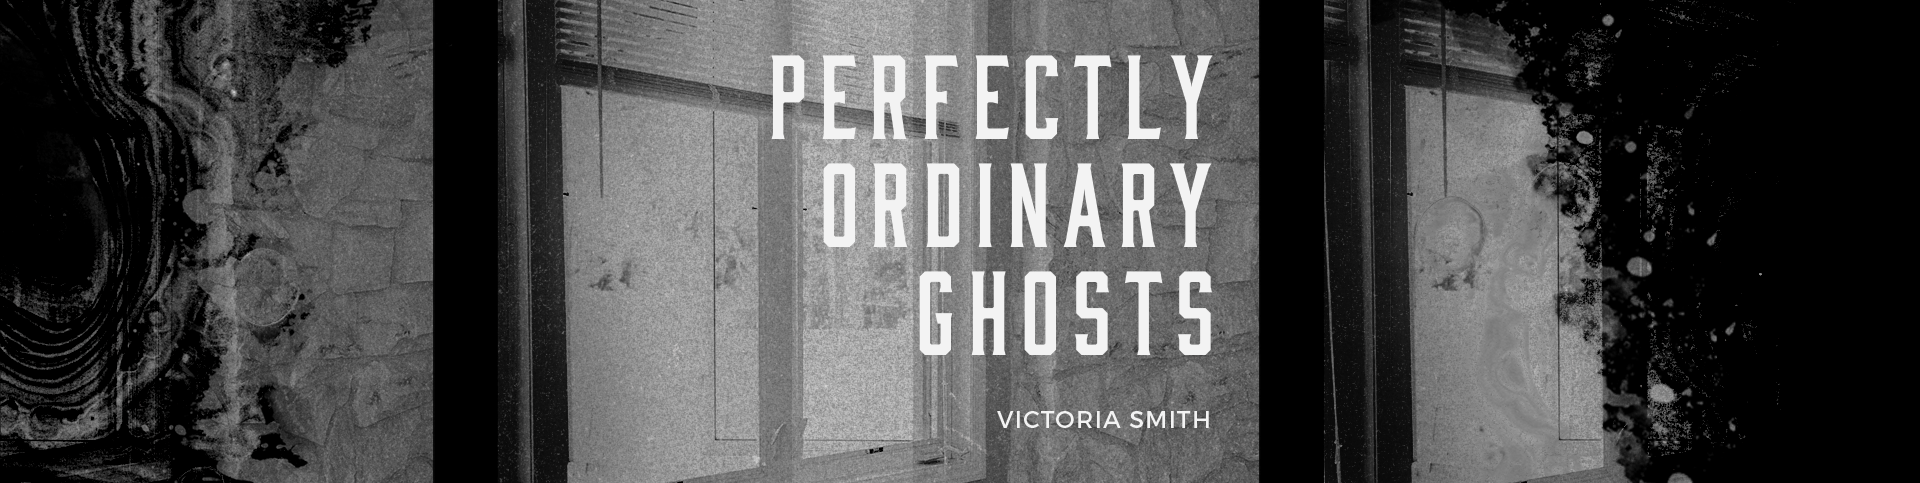 Perfectly Ordinary Ghosts